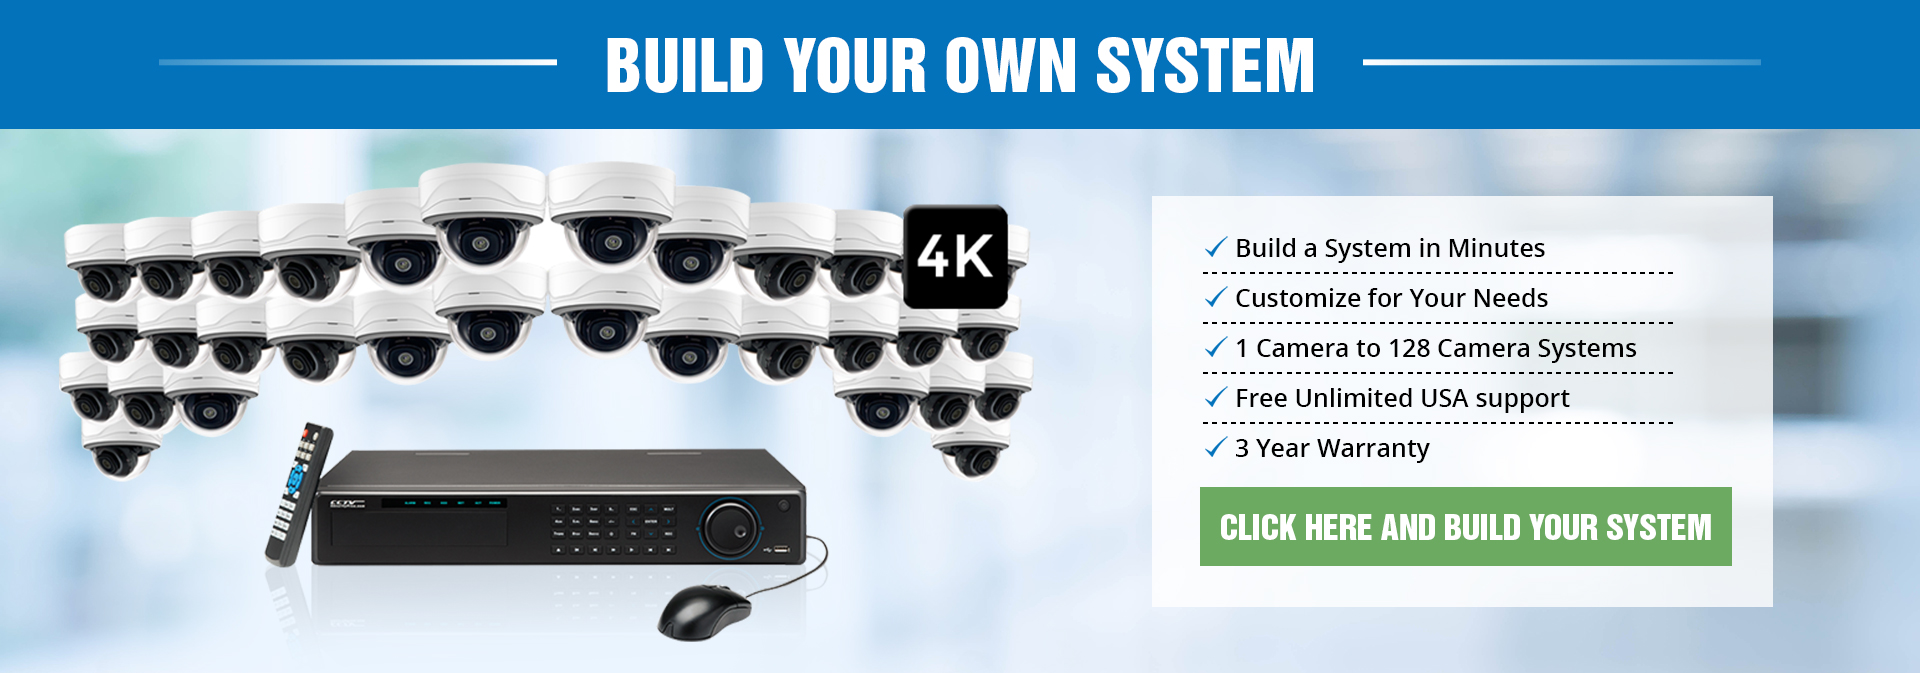 Want to build your own custom system? Not sure what you need?